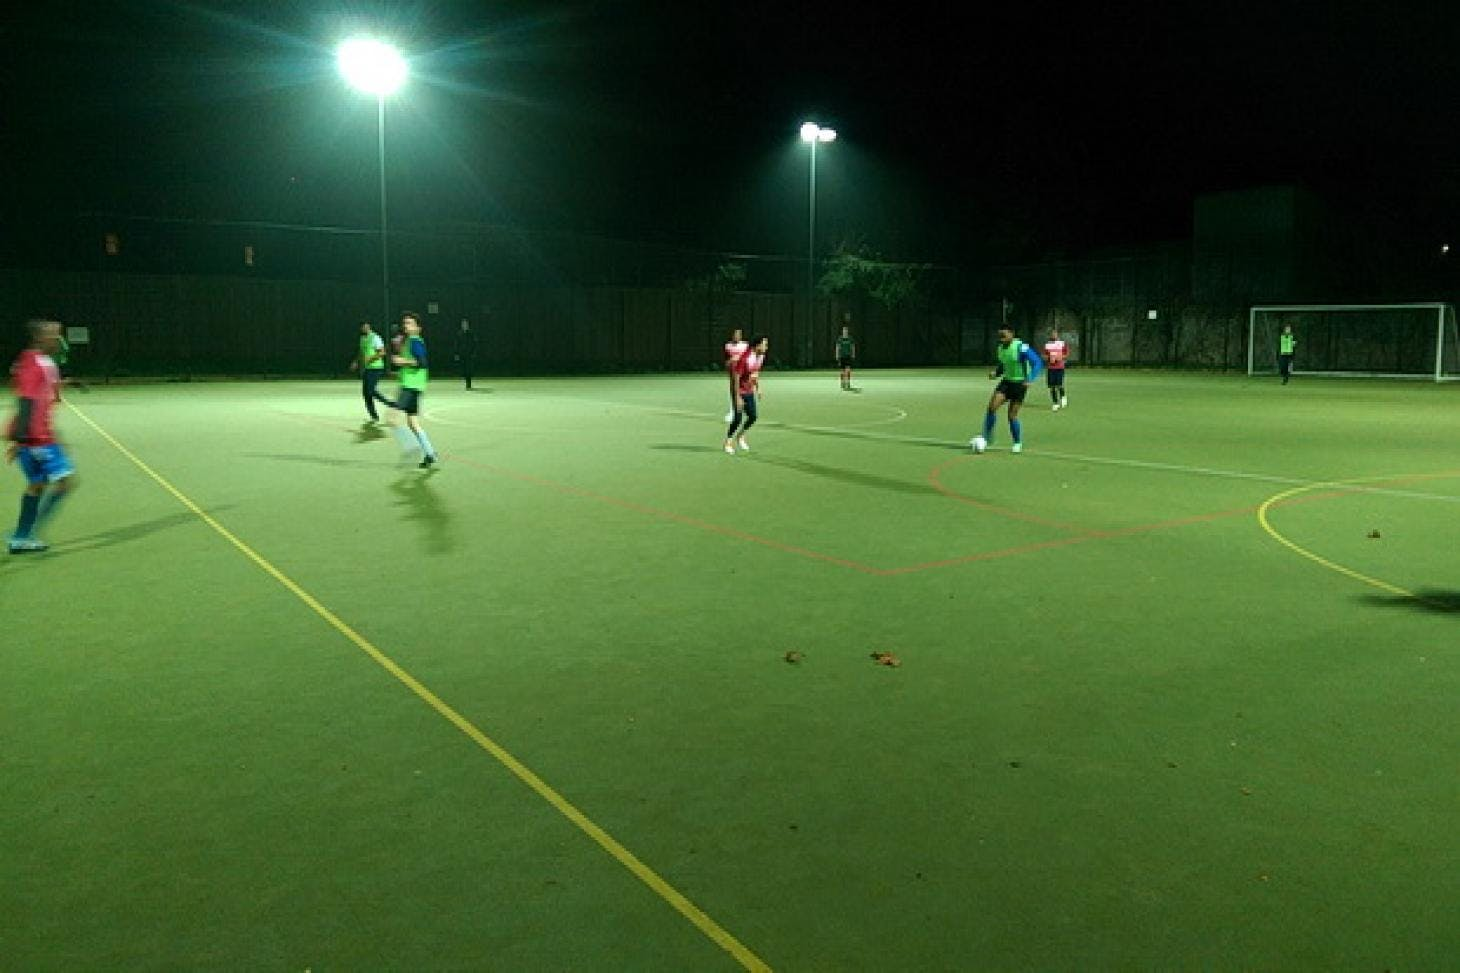 Platanos College Outdoor | Astroturf hockey pitch